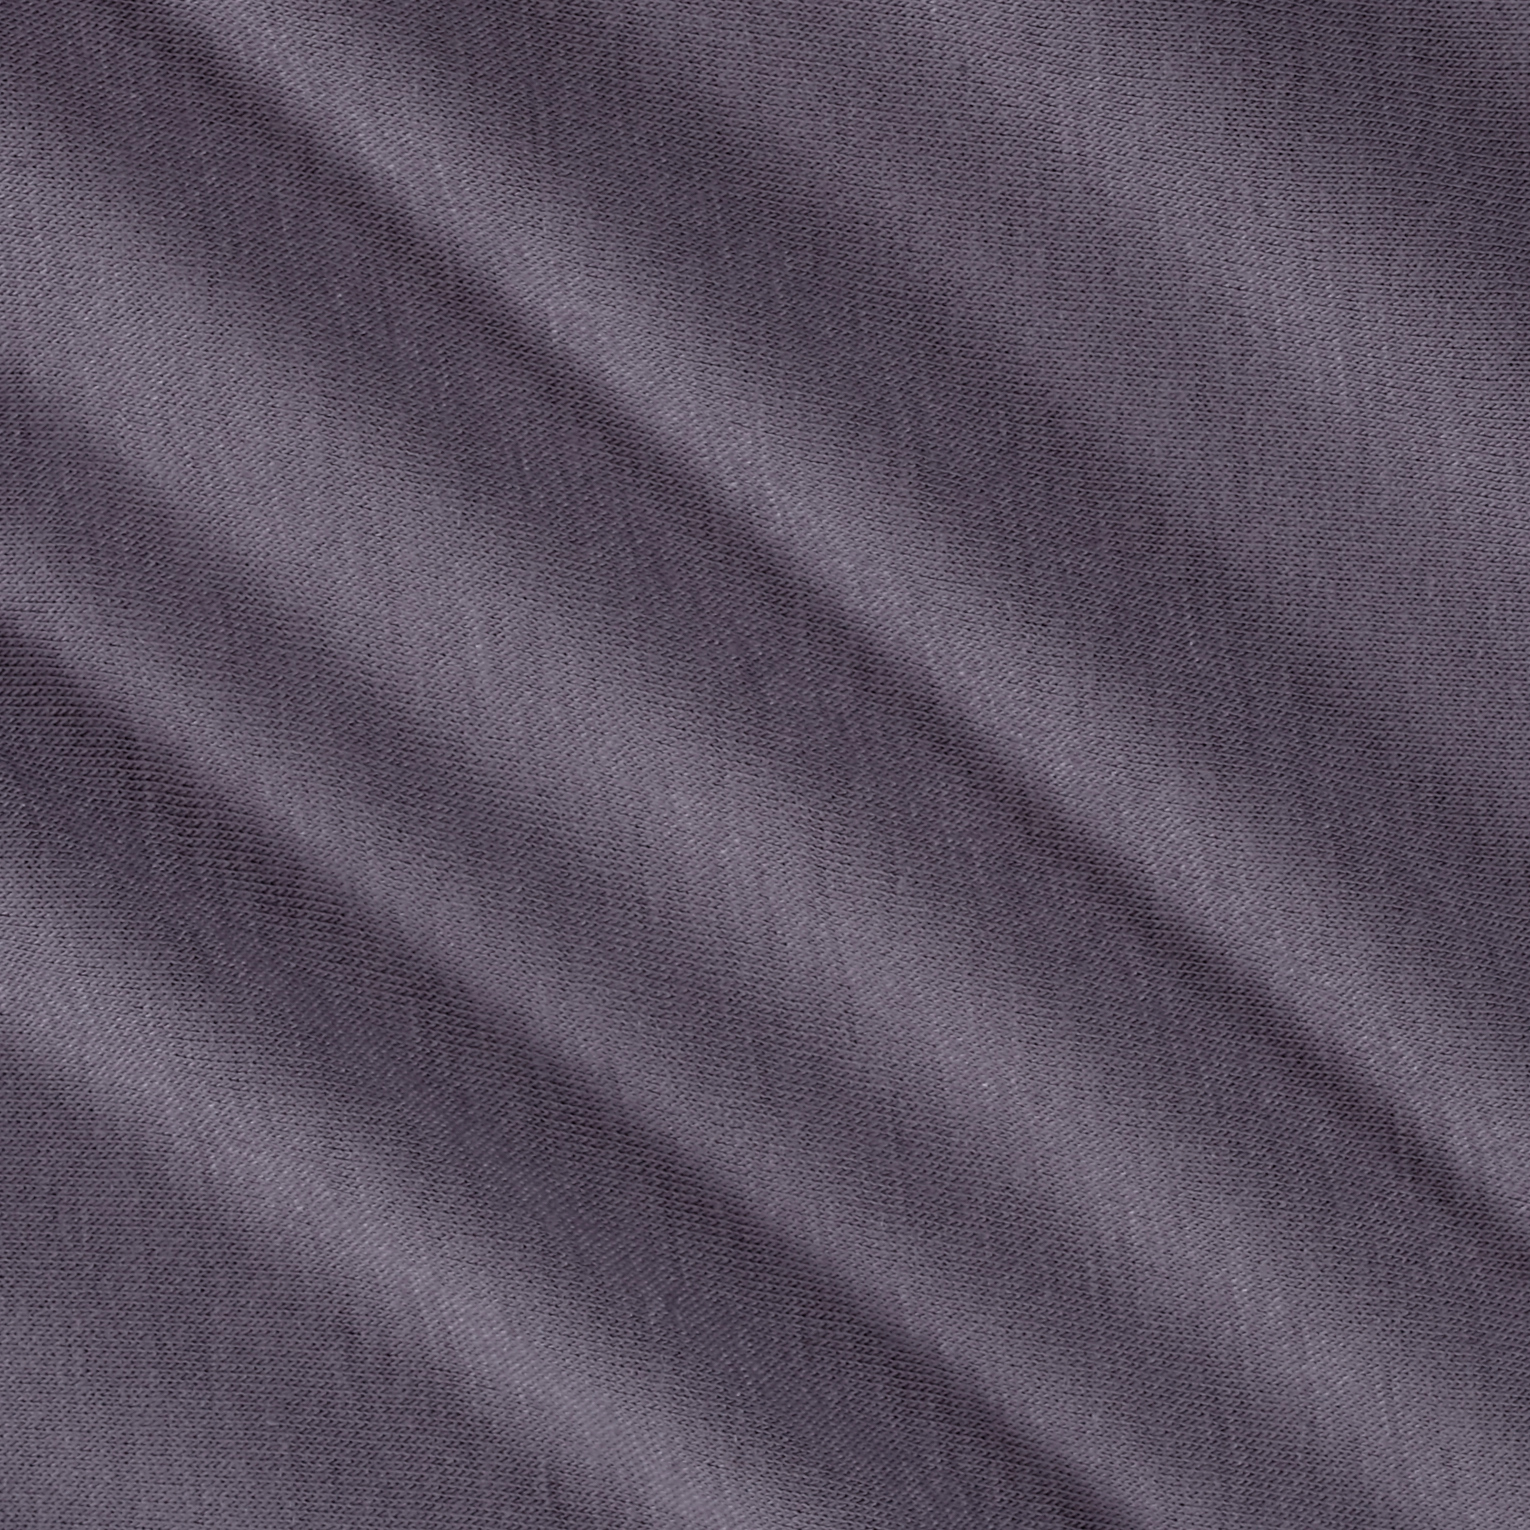 Rayon Spandex Jersey Knit Silver Fabric by Stardom Specialty in USA